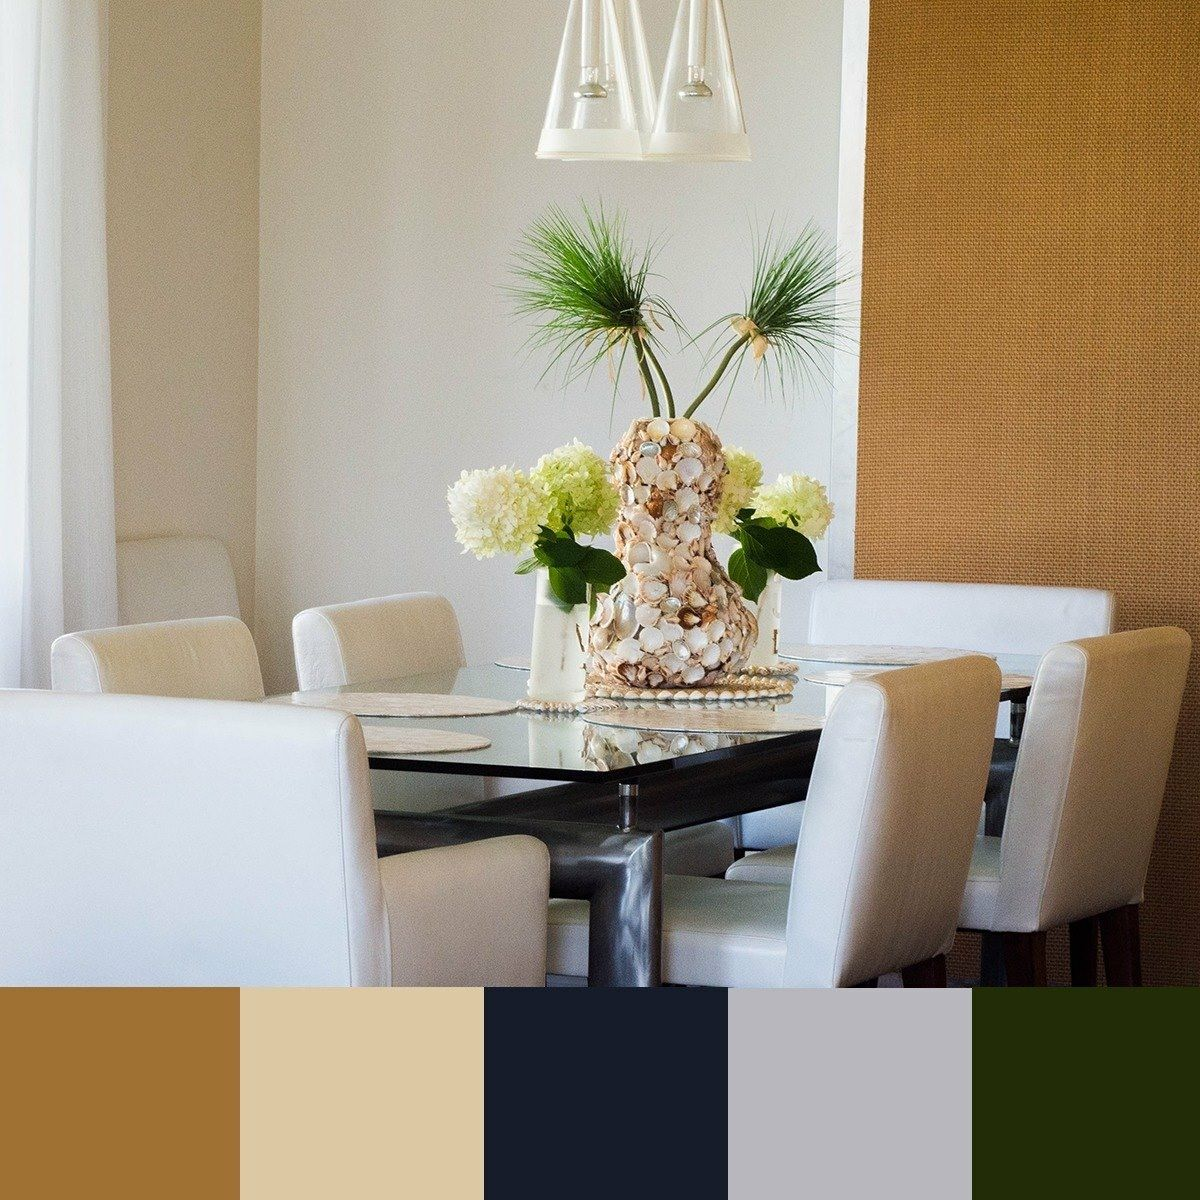 Earthtone Colors Come From Natural Things Around Us: Brown Soil, Green  Leaf, Cloudy Sky, As Well As The Red Sun. These Can Create A Warm,  Nature Friendly ...